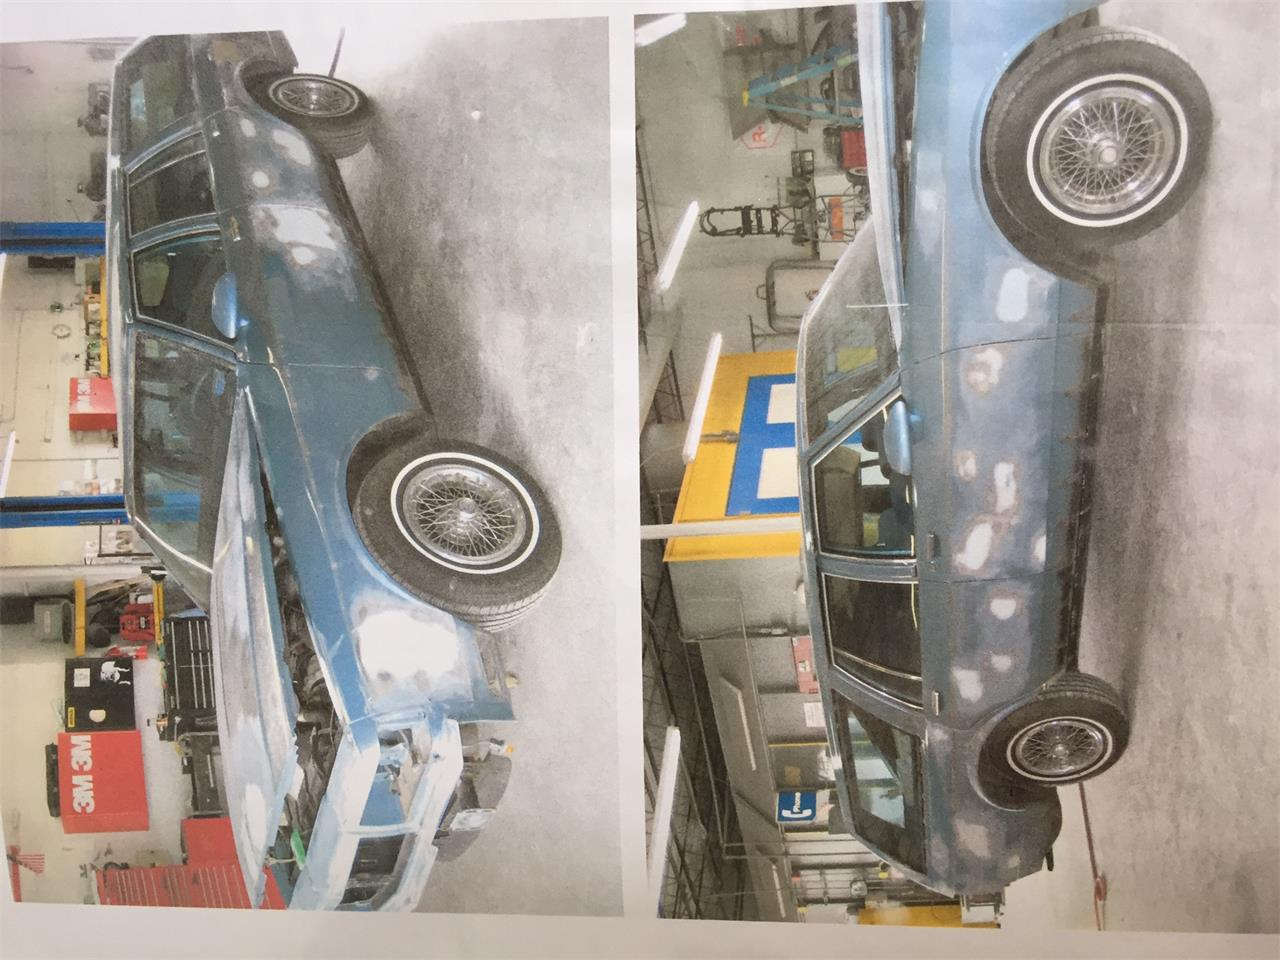 Large Picture of '87 Chevrolet Caprice located in Rome Italy - $16,900.00 - JH35